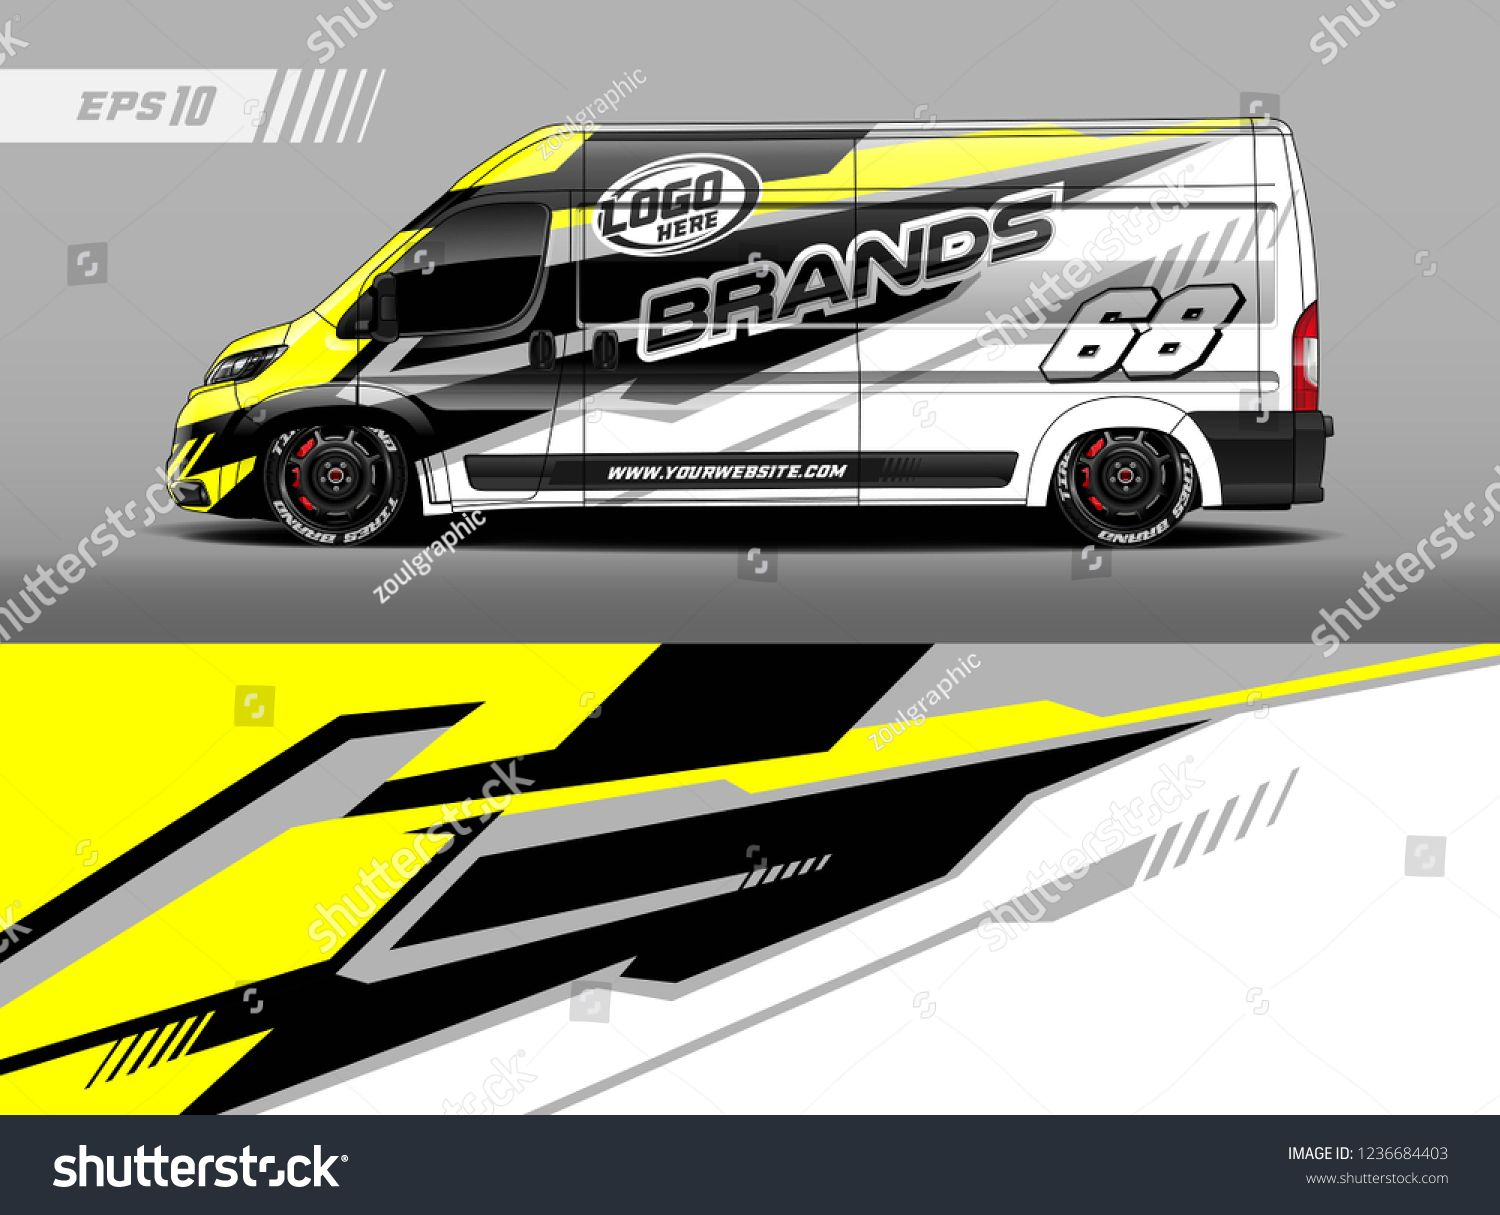 Cargo van decal design vector graphic abstract stripe racing background kit designs for wrap vehicle